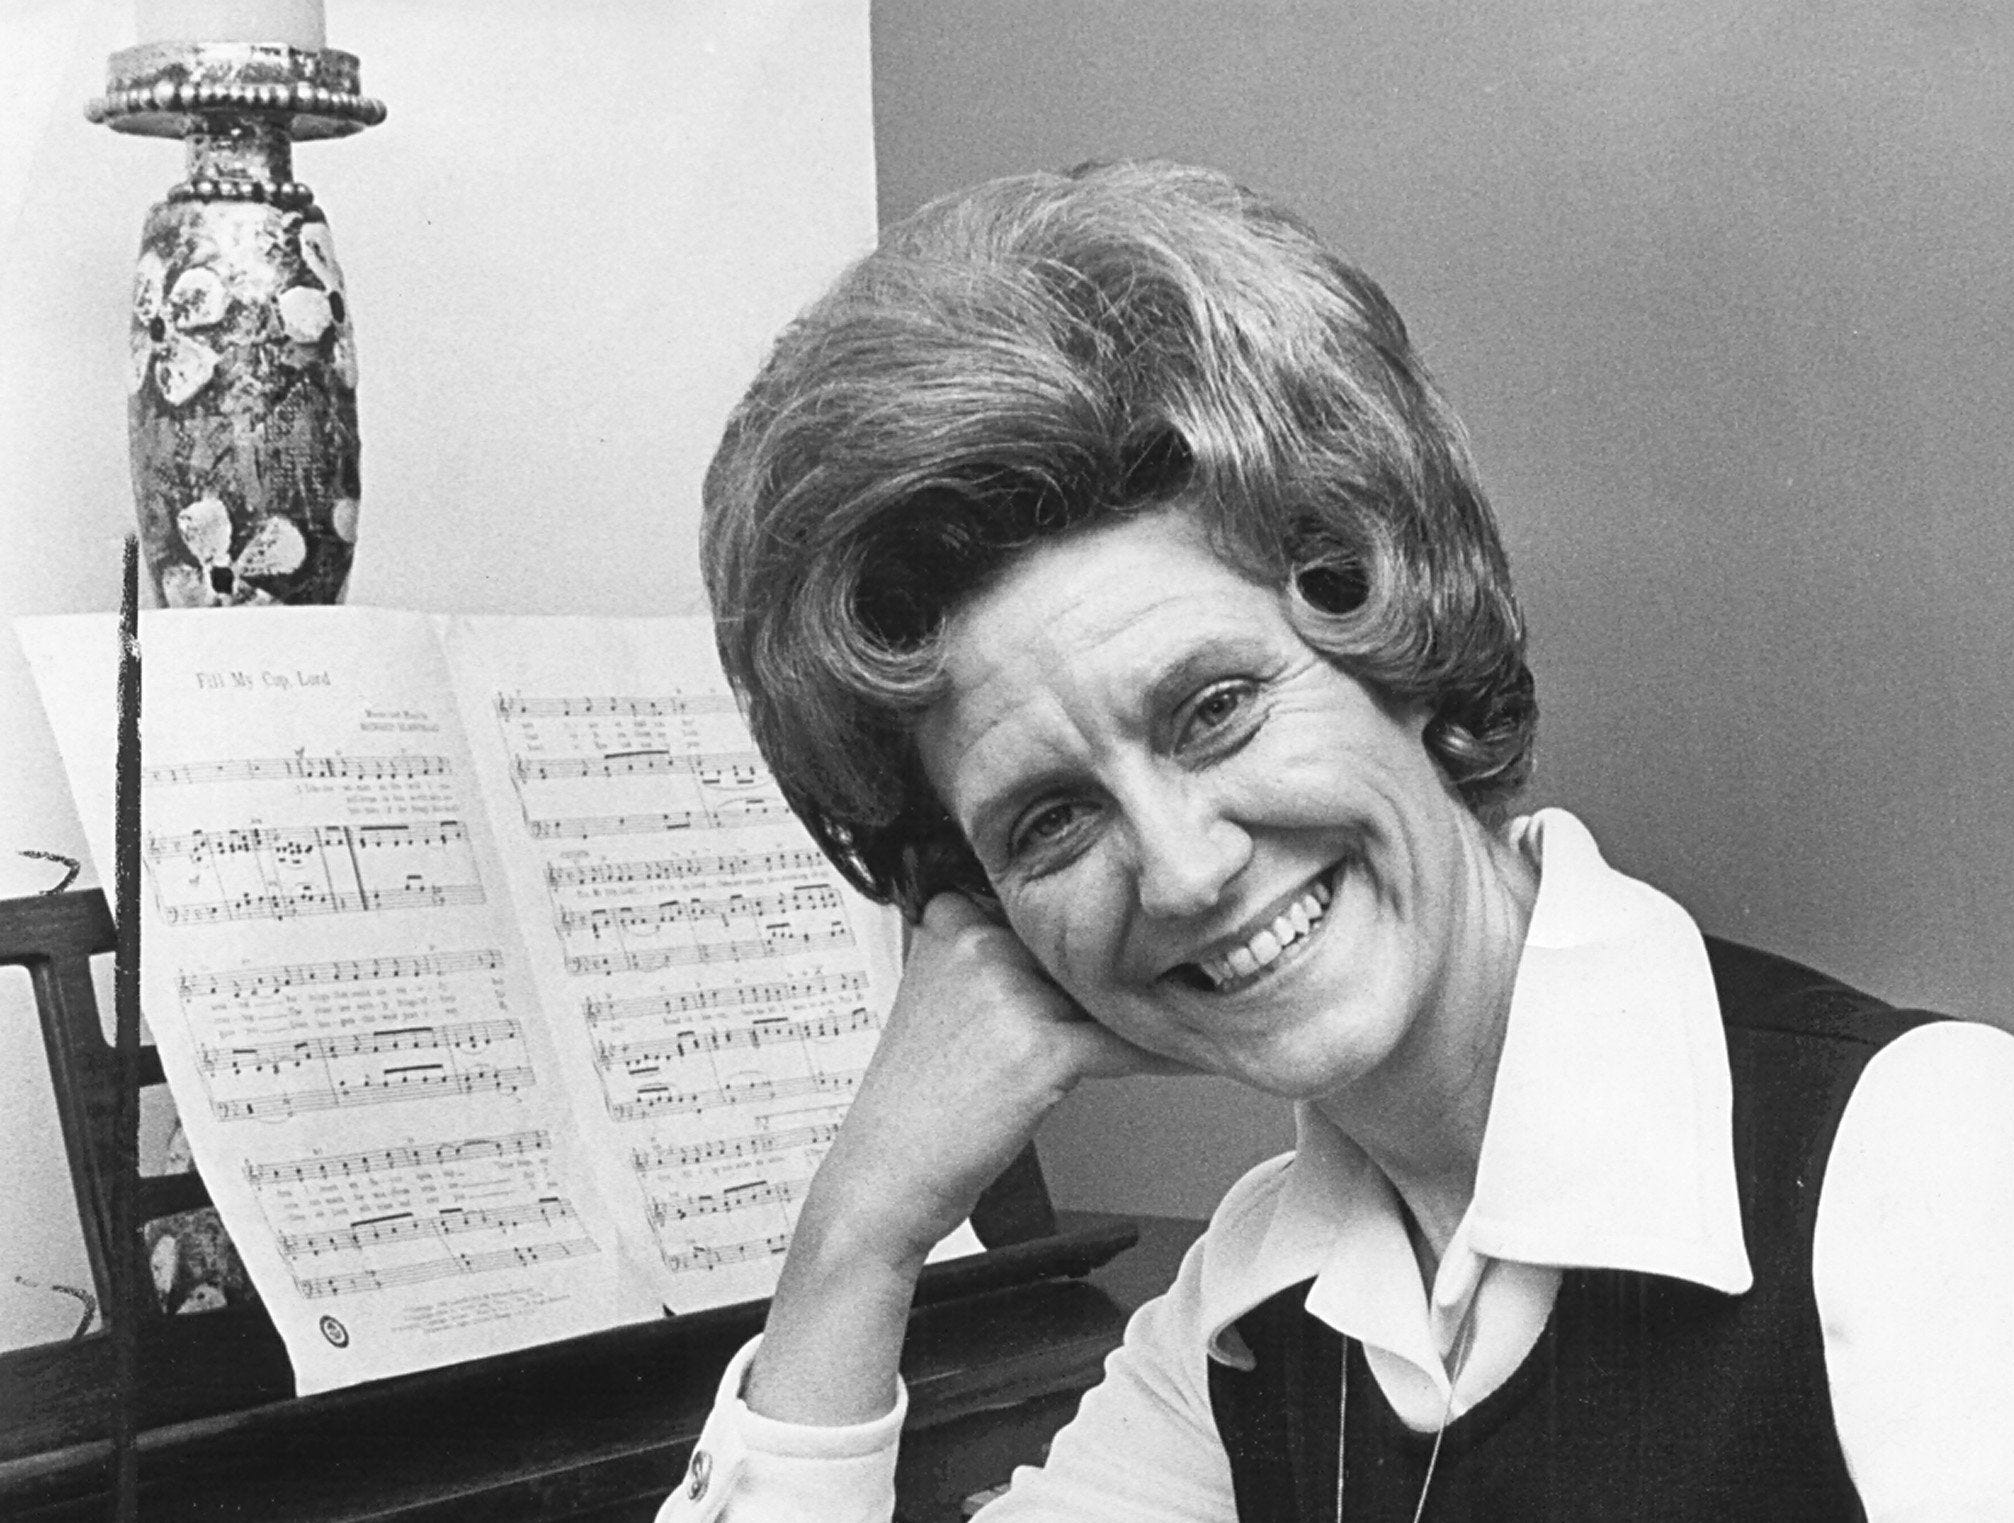 Mrs. Marie Moore was all smiles on 5 Mar 1973 after she was named Tennessee Mother of the Year. A May trip to Denver is ahead where she will represent the state in the American Mother of The Year contest.